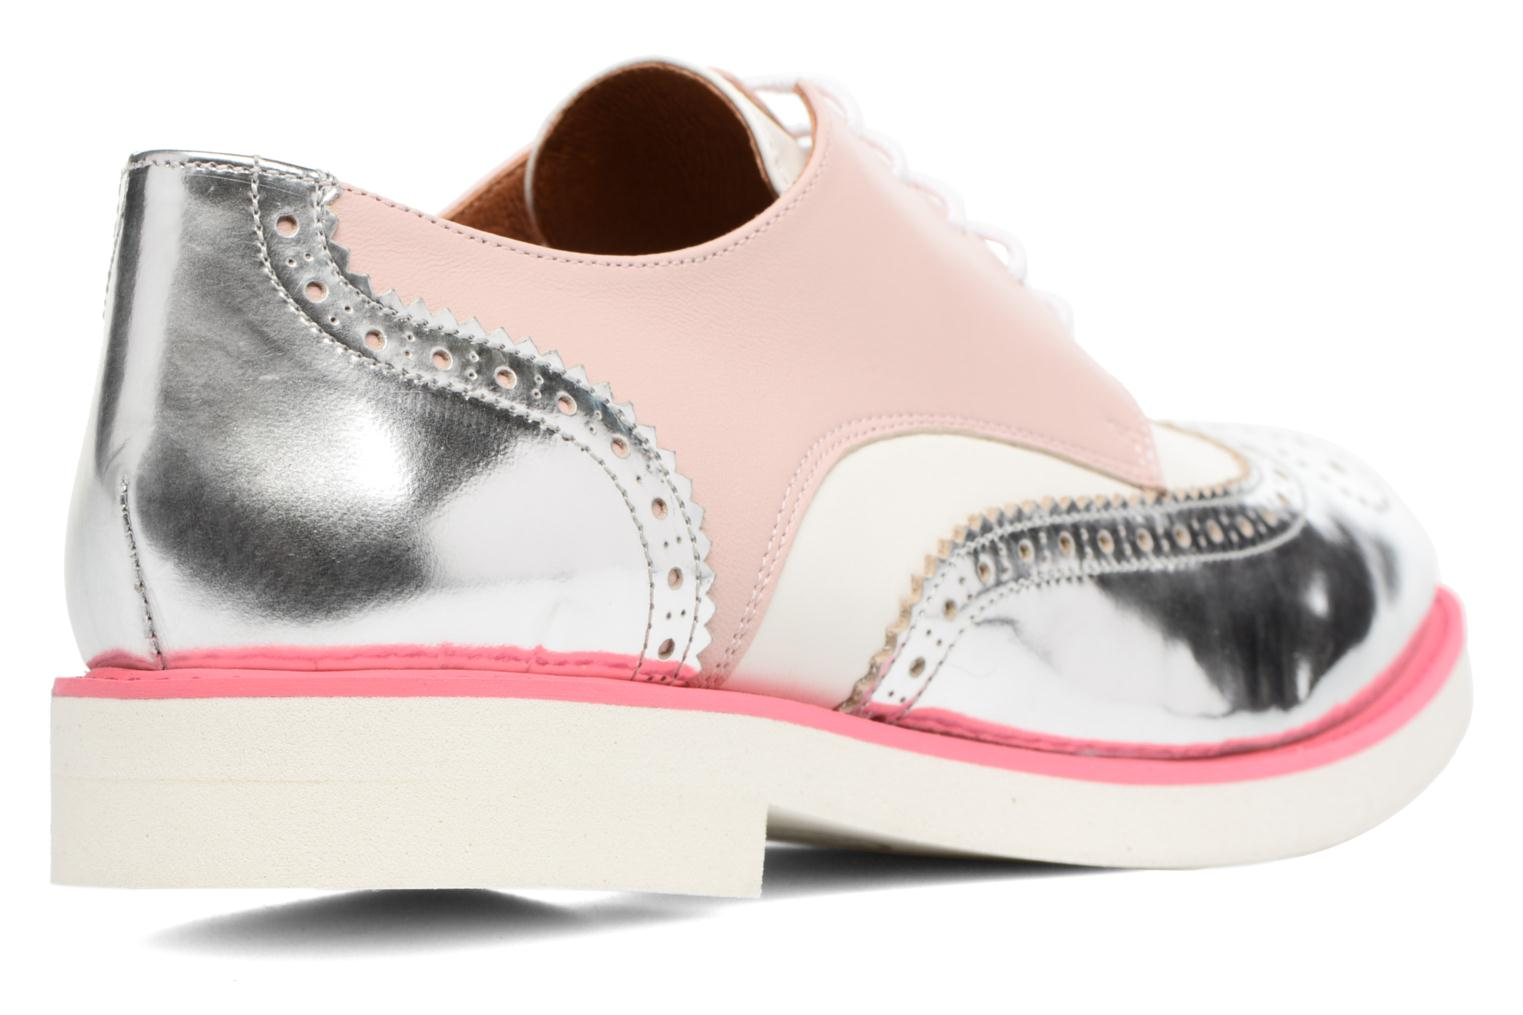 Made By Sarenza Busy Girl Chaussures À Lacets 3 3 Parere